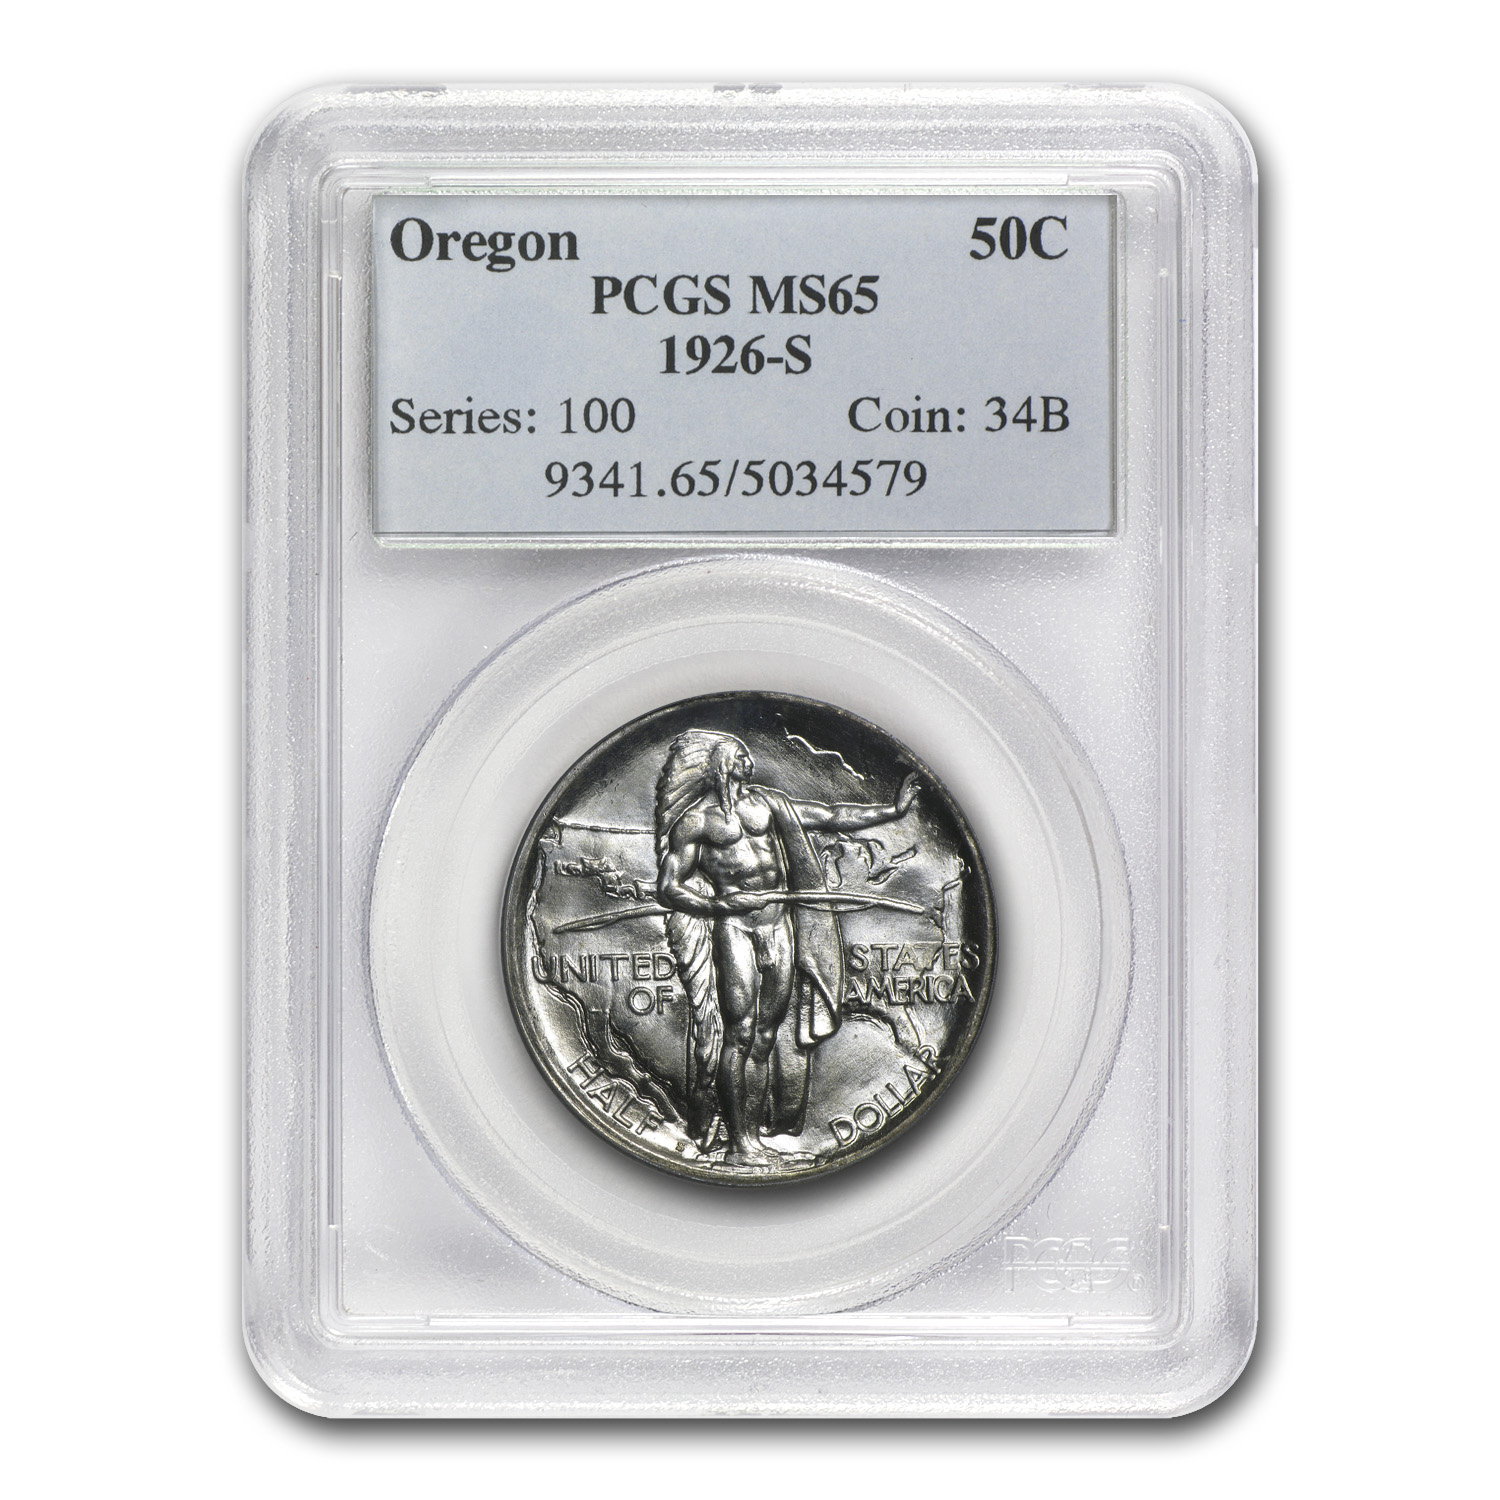 1926-S Oregon Commemorative Half Dollar MS-65 PCGS